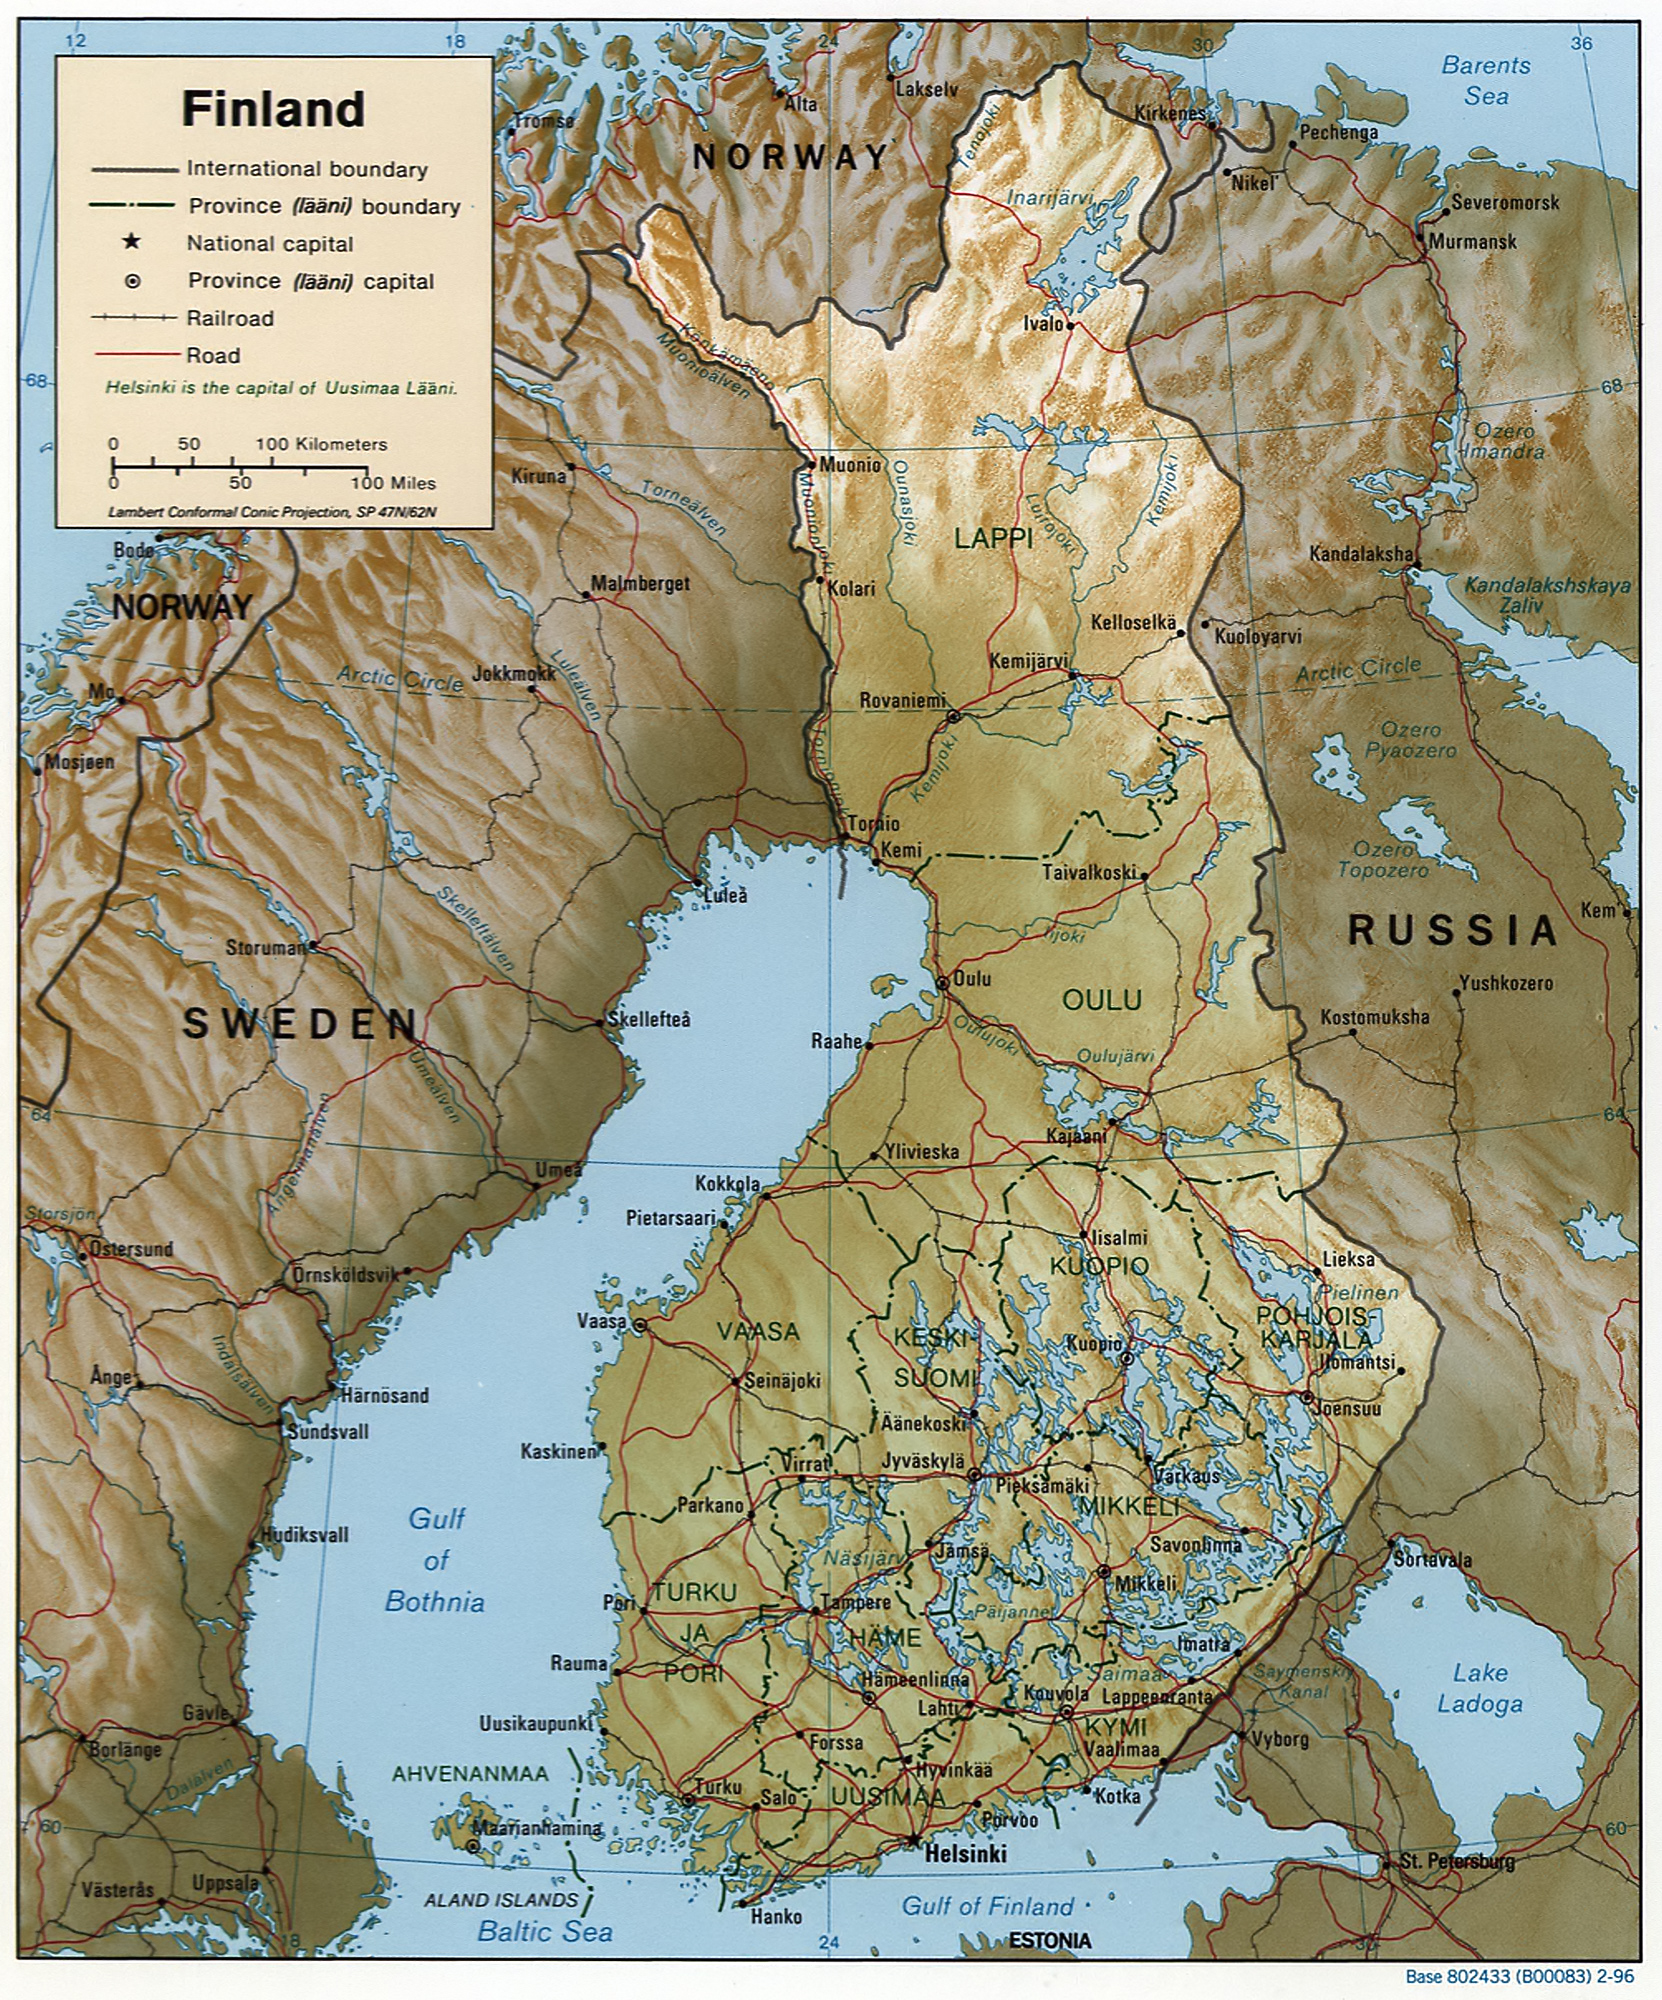 kart over finland Atlas of Finland   Wikimedia Commons kart over finland